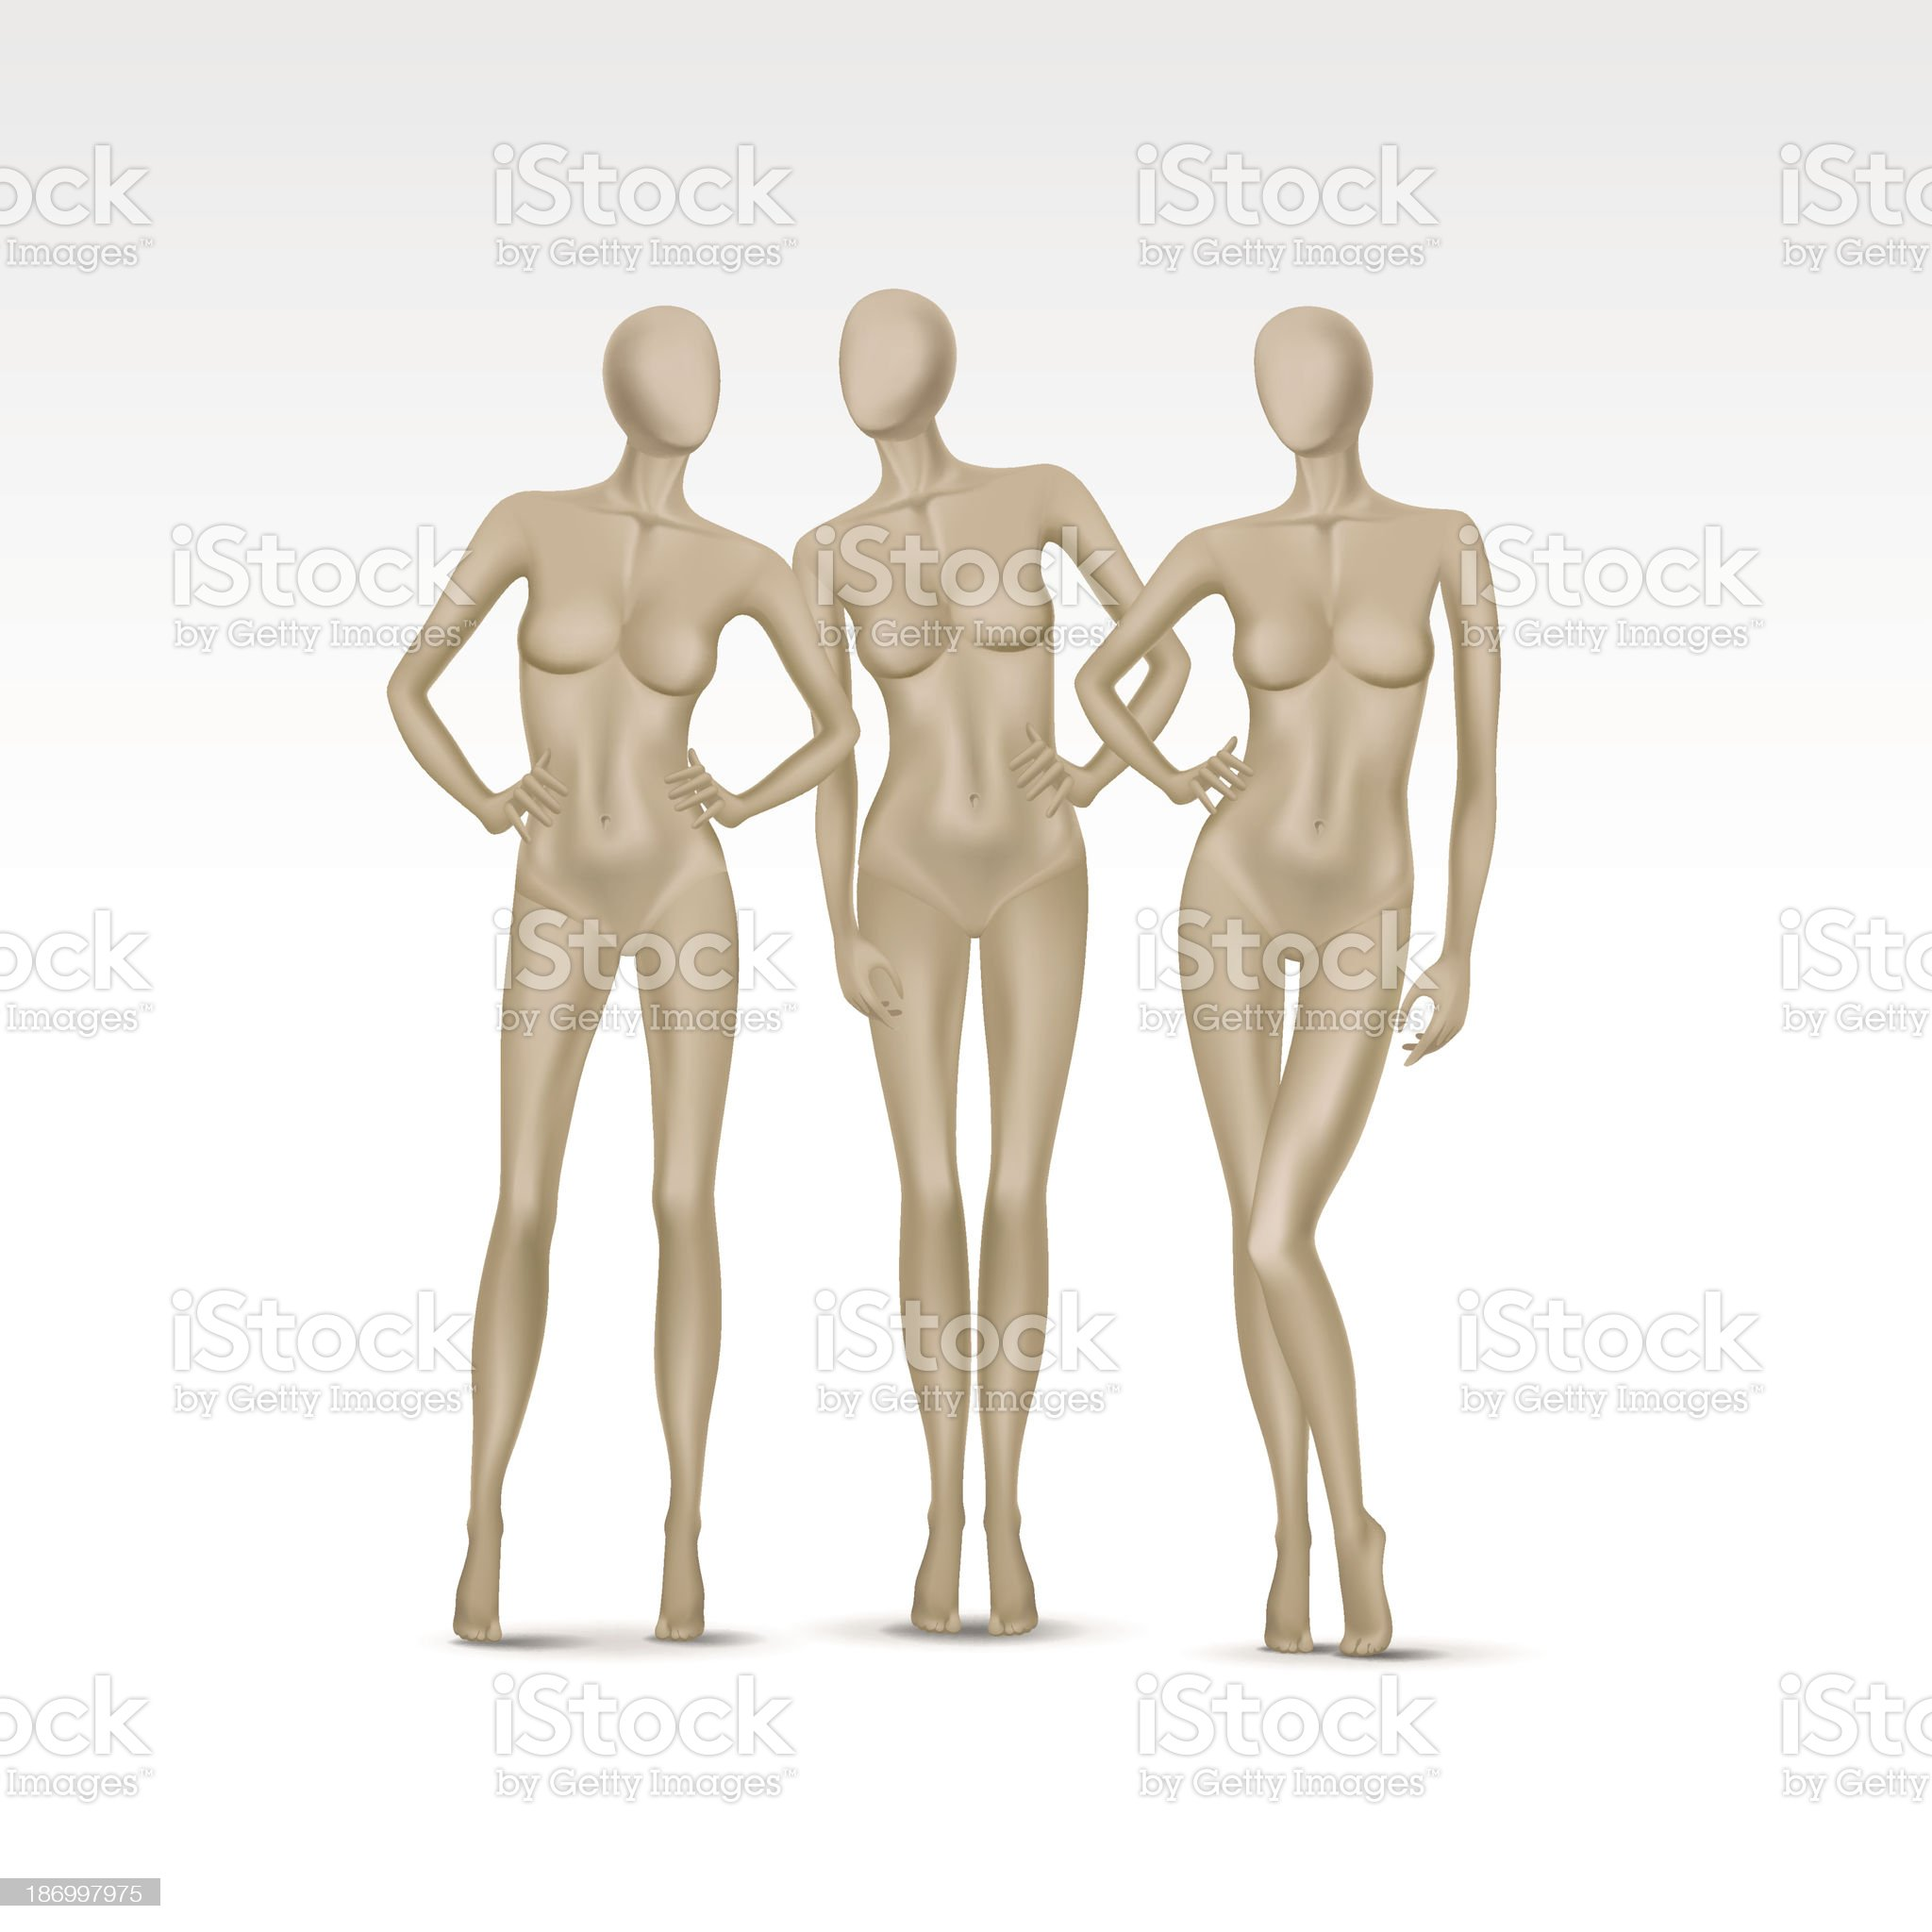 Vector Set of Isolated Female Mannequins royalty-free stock vector art